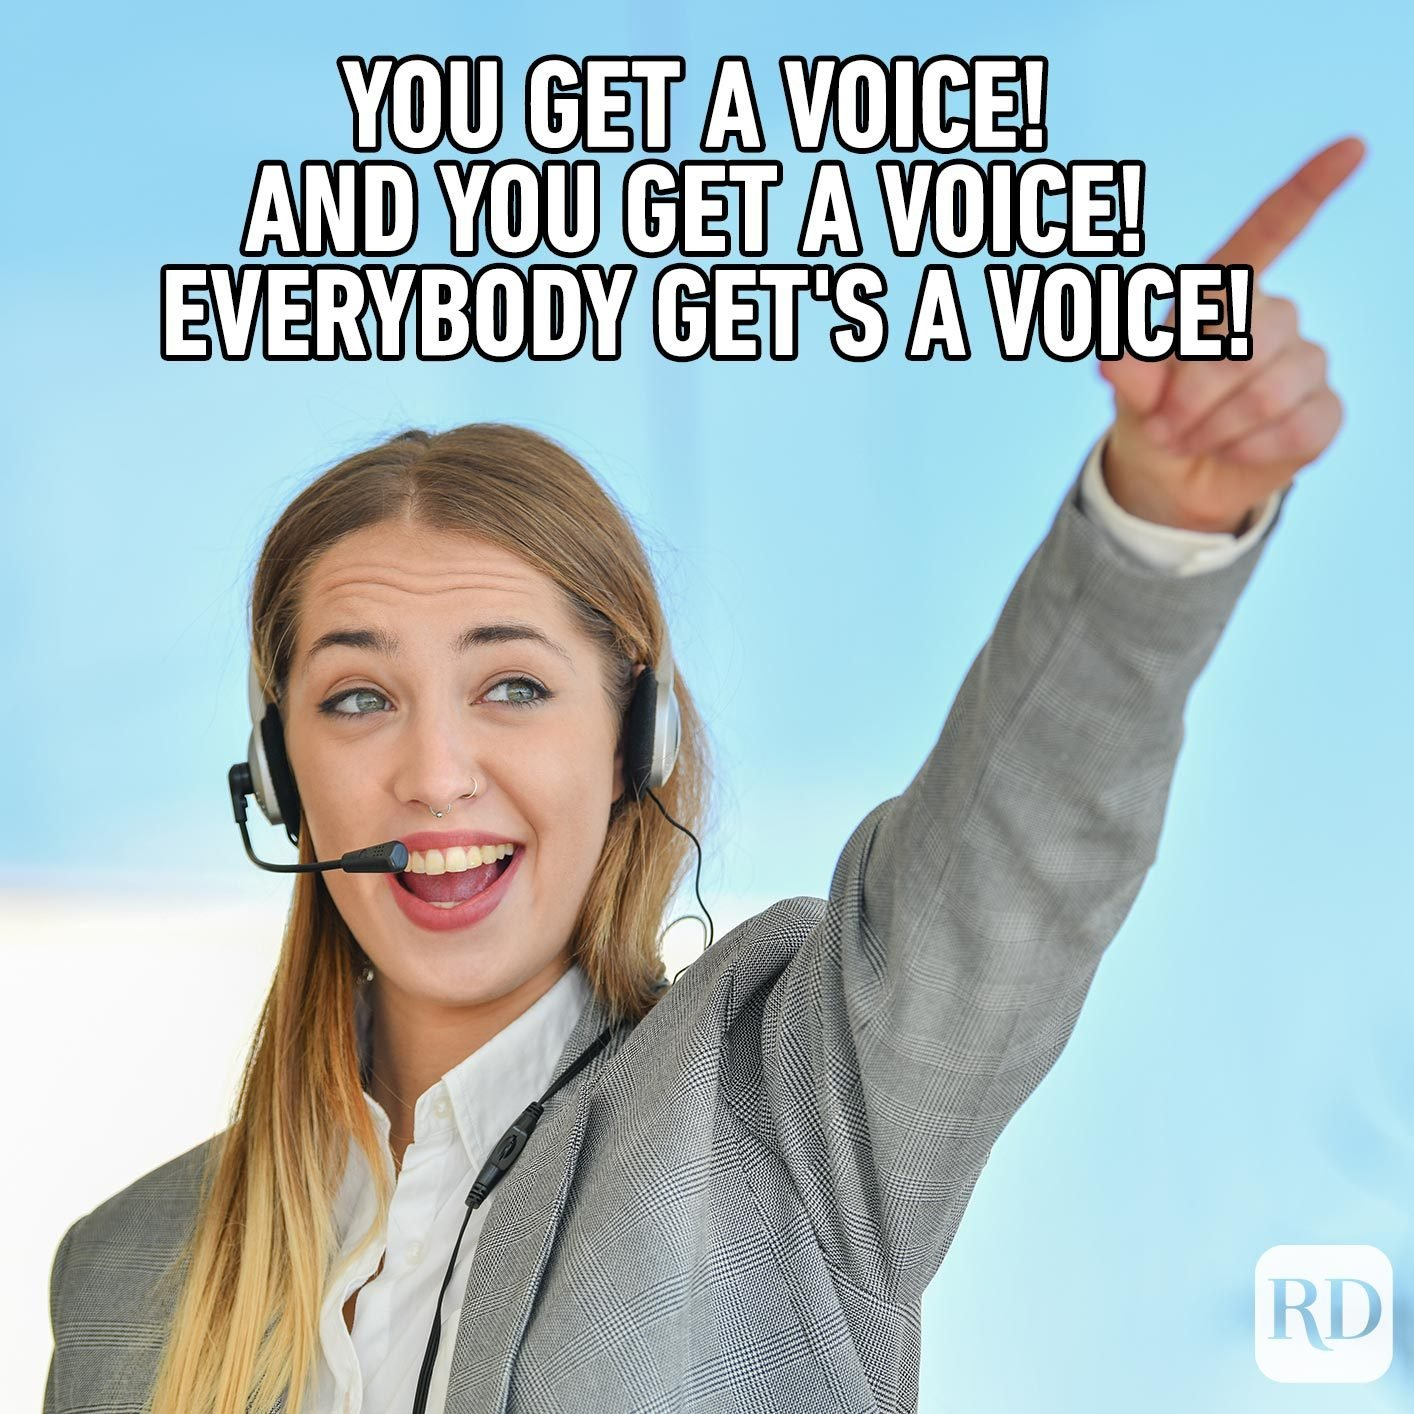 Woman pointing with enthusiasm. Meme text: You get a voice! And you get a voice! Everybody get's a voice!